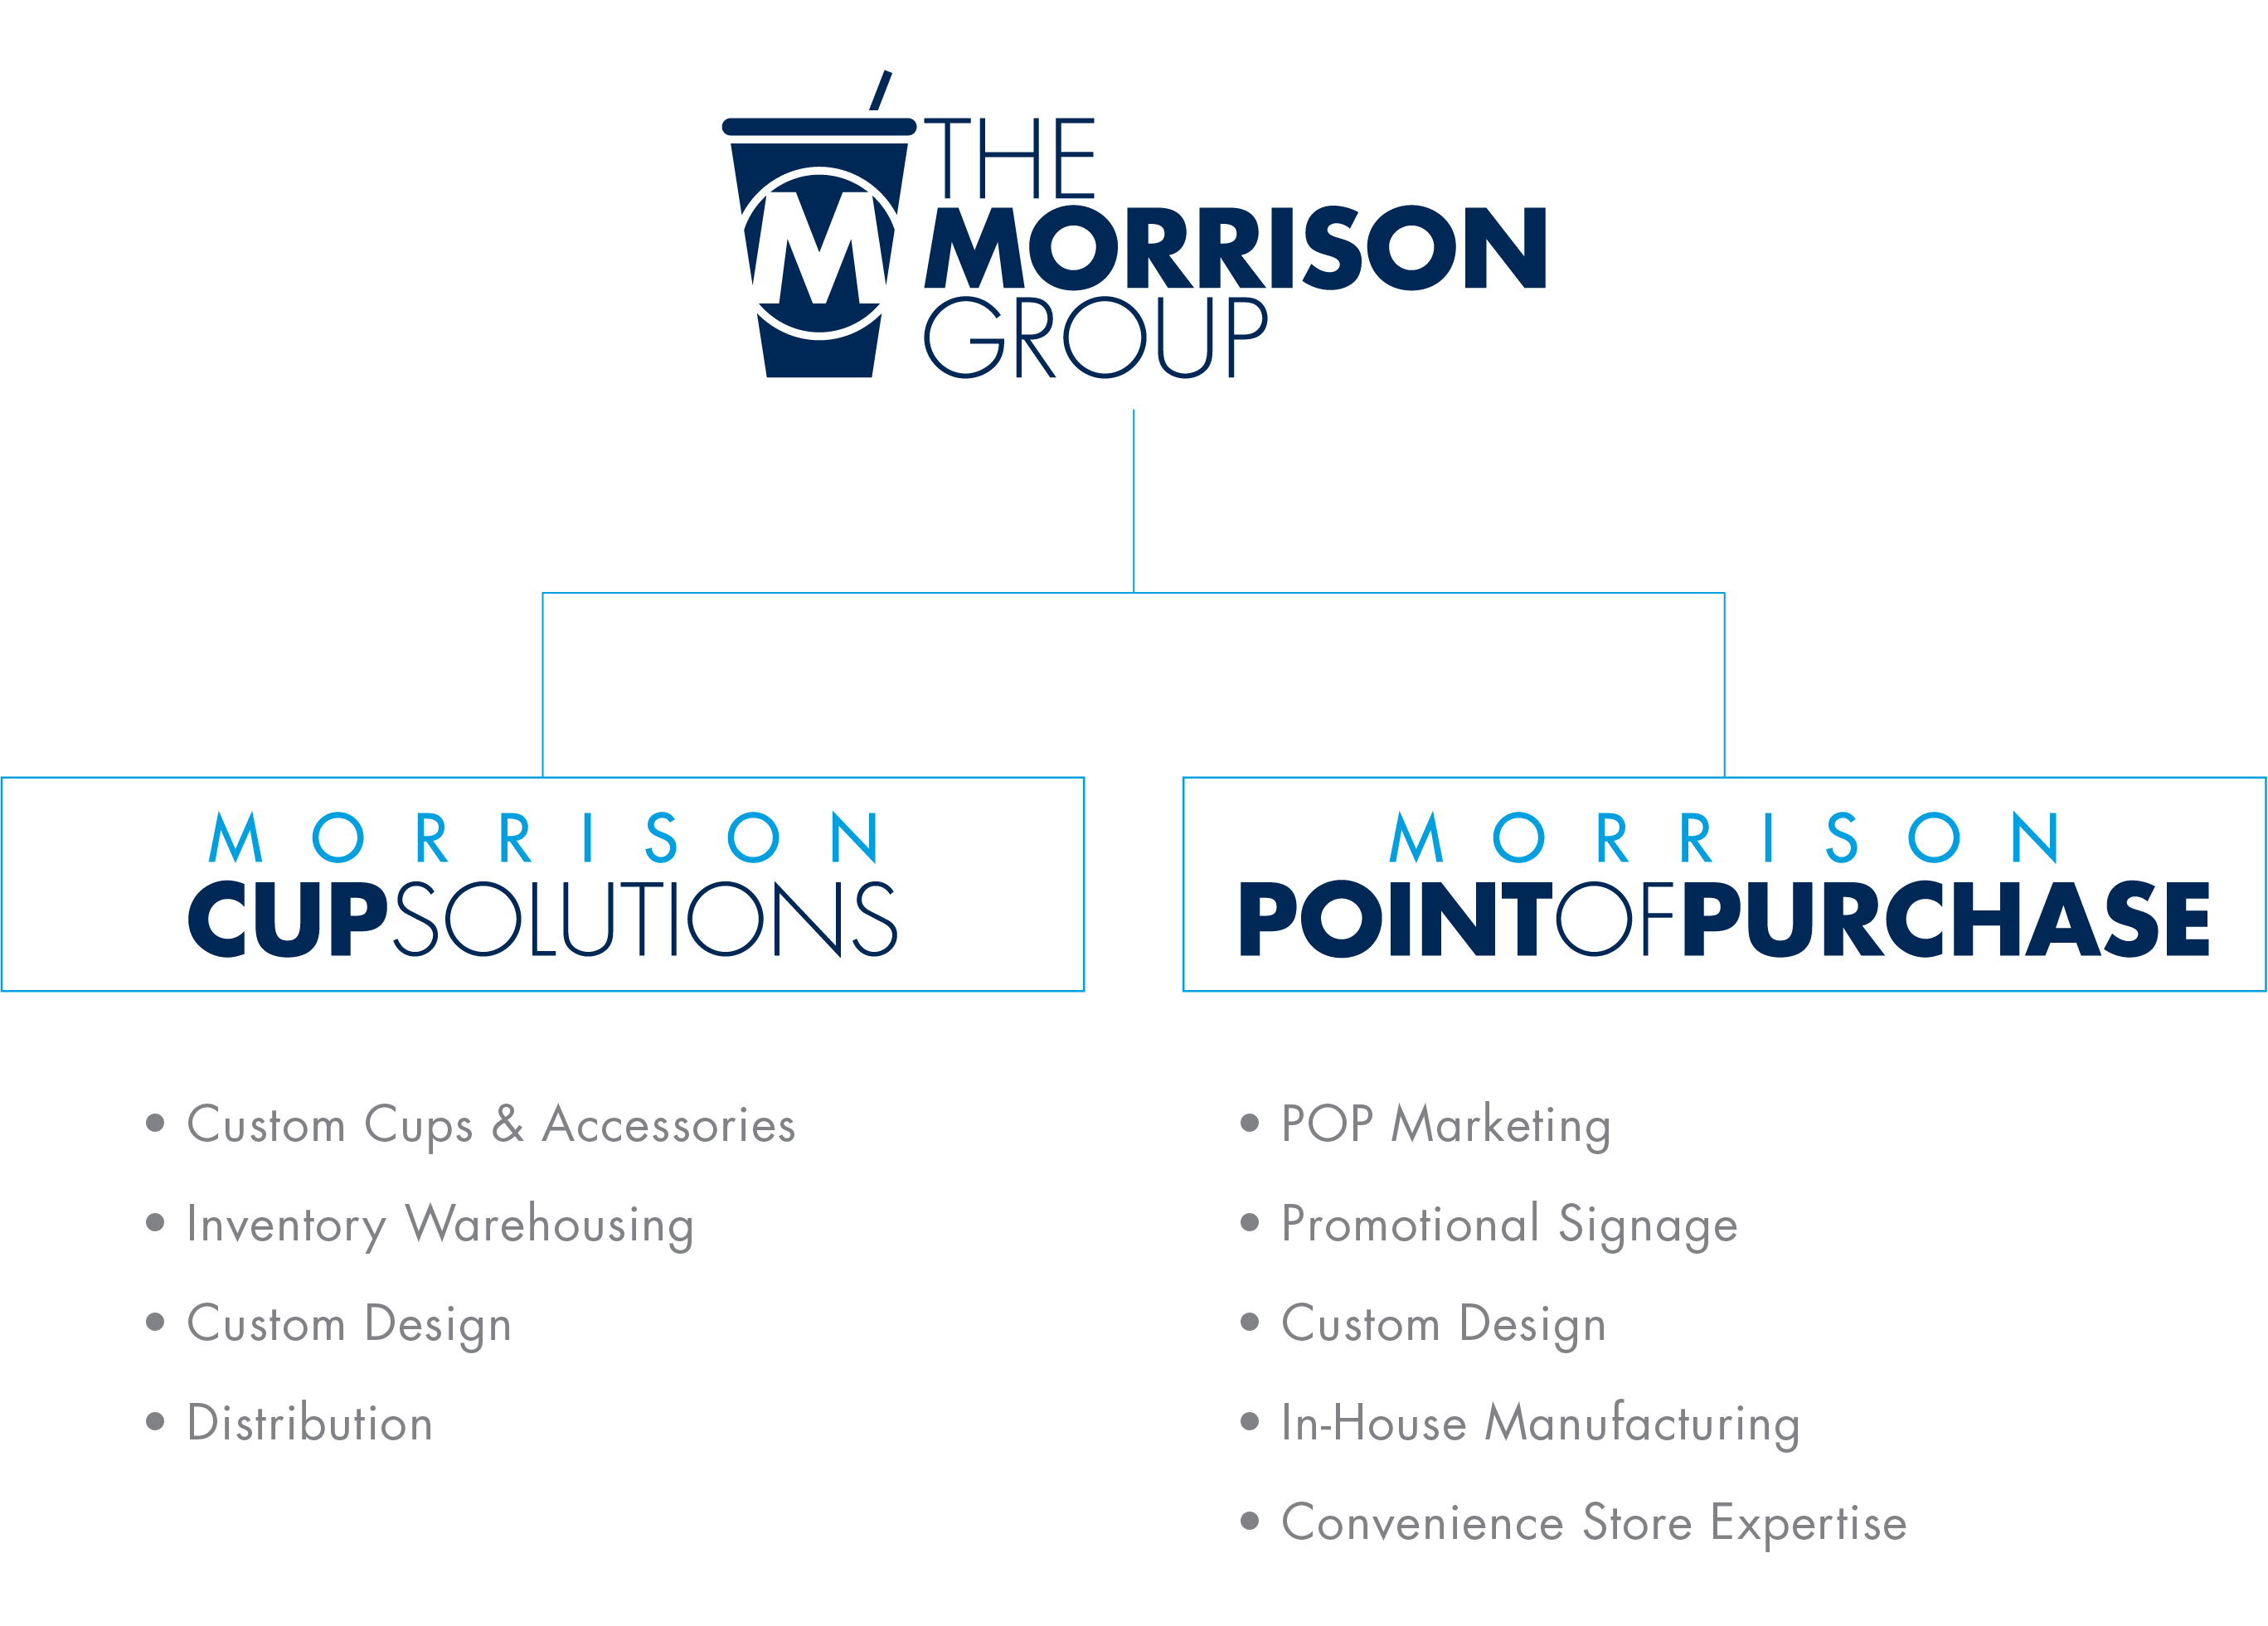 Morrison Cup Solutions, Morrison Point of Purchase